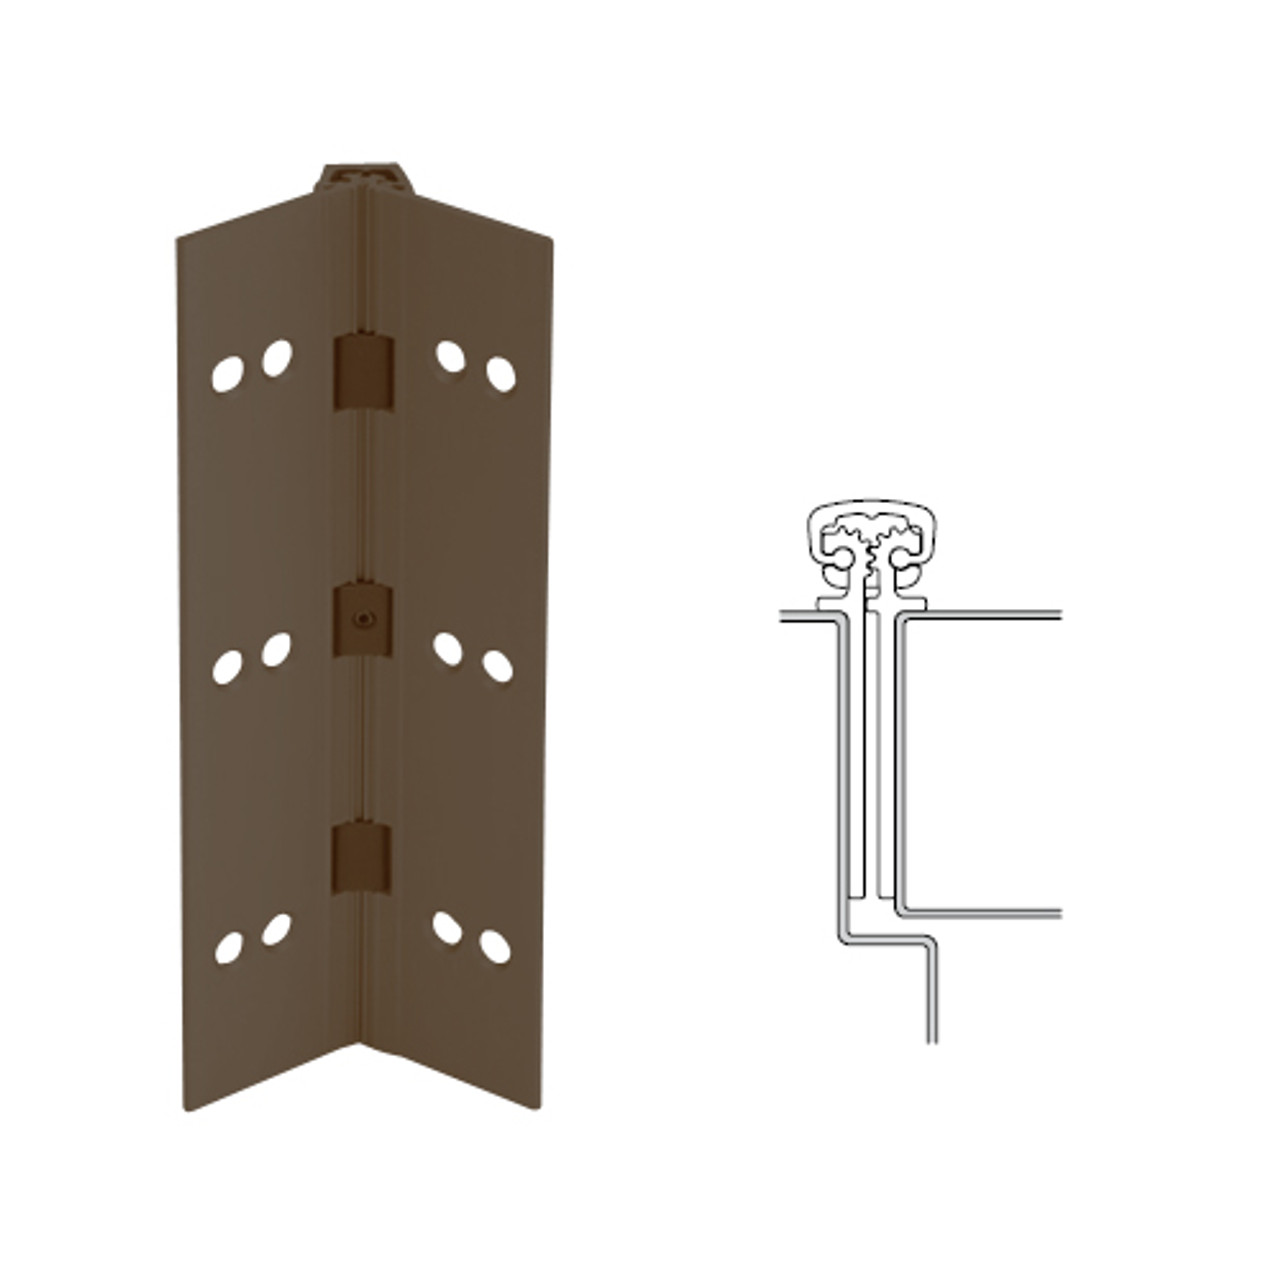 027XY-313AN-120-WD IVES Full Mortise Continuous Geared Hinges with Wood Screws in Dark Bronze Anodized